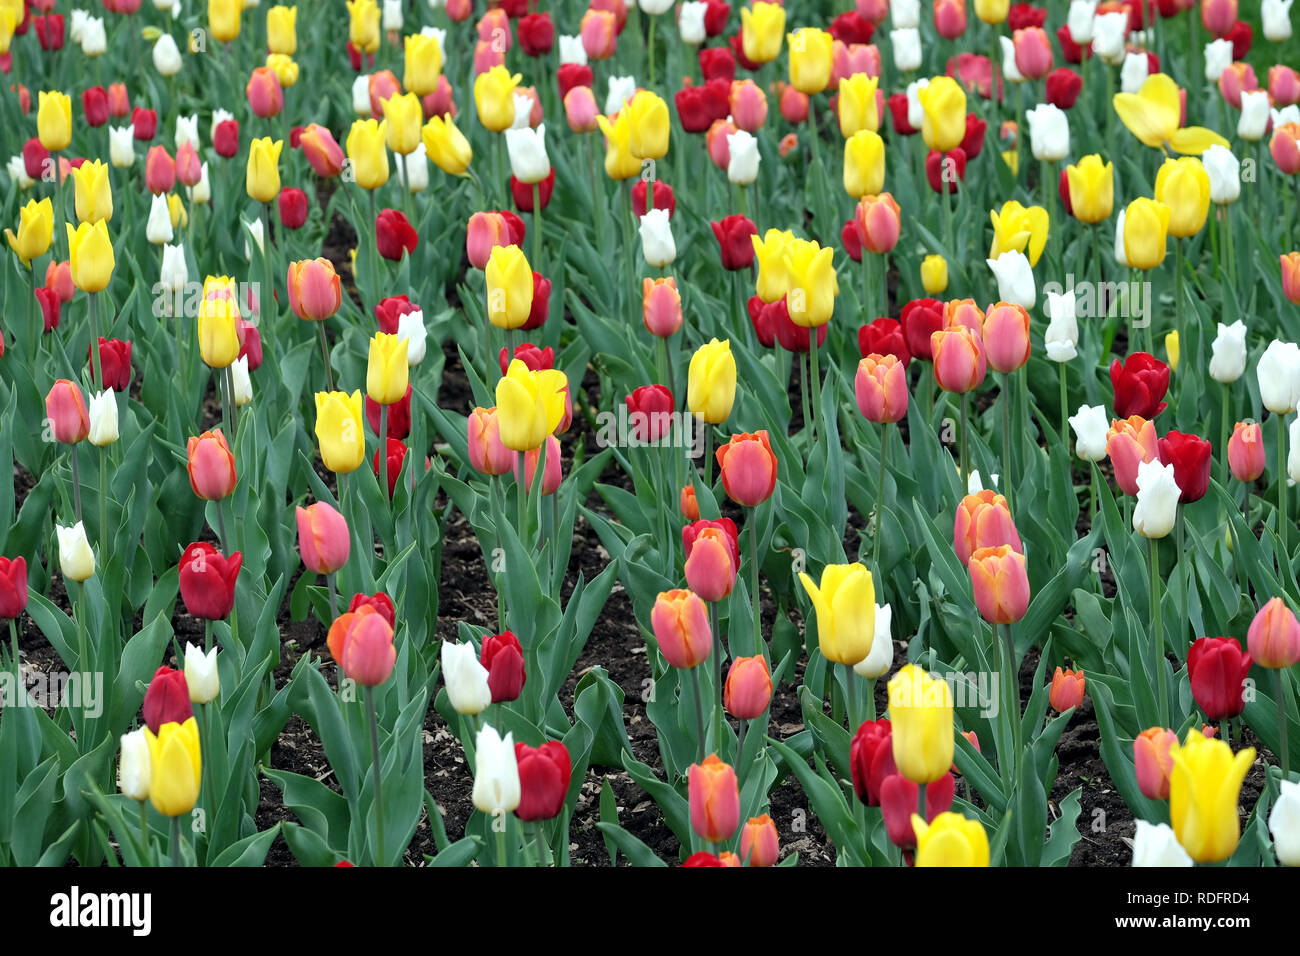 Many colorful gentle tulips in the garden in sunny spring day closeup view Stock Photo